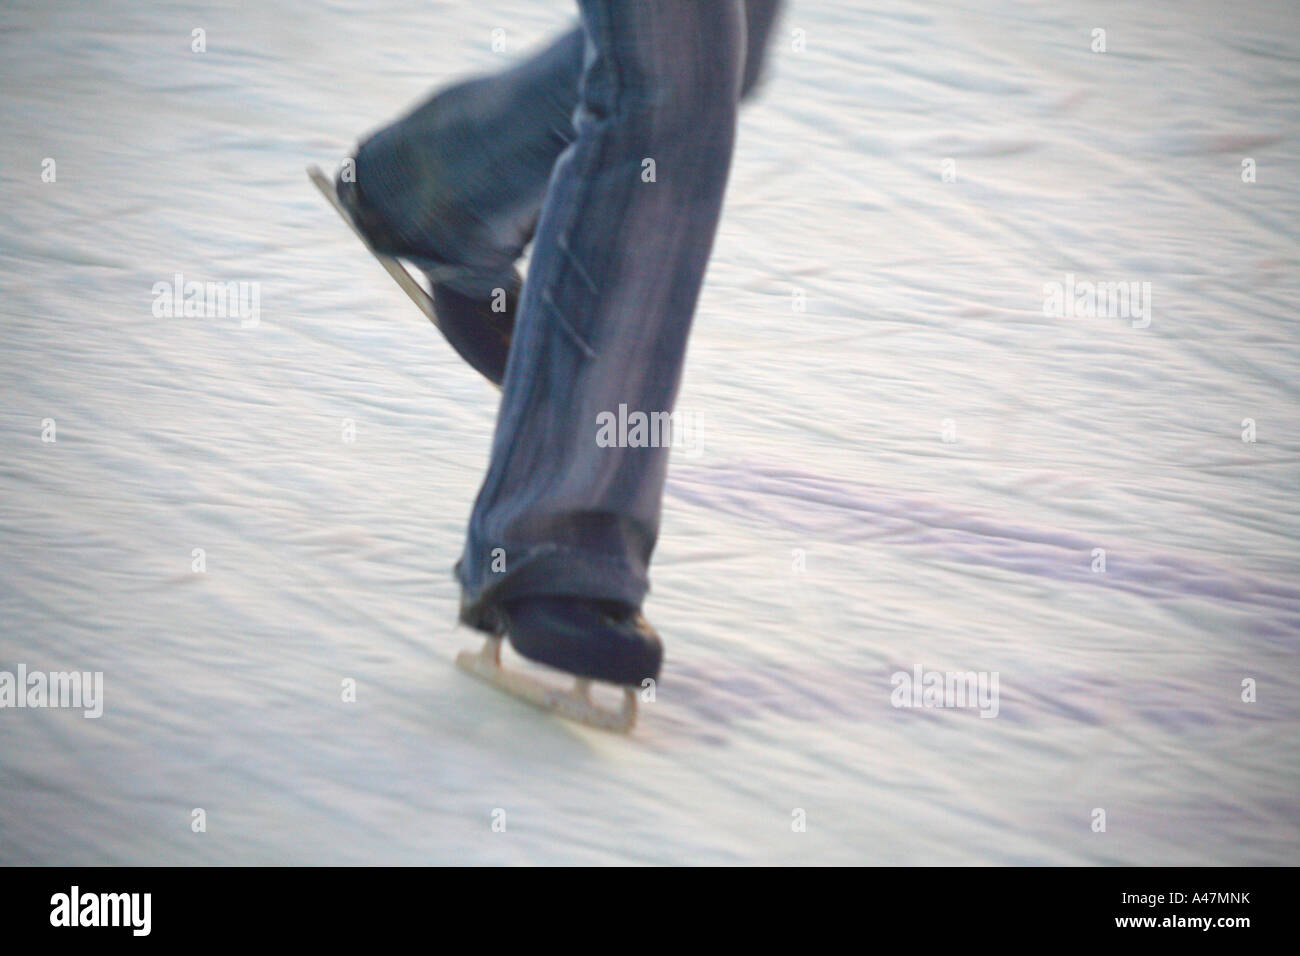 France Les Gets ski resort town village traditional ice skate skating cold leisure fun boots blade active danger - Stock Image